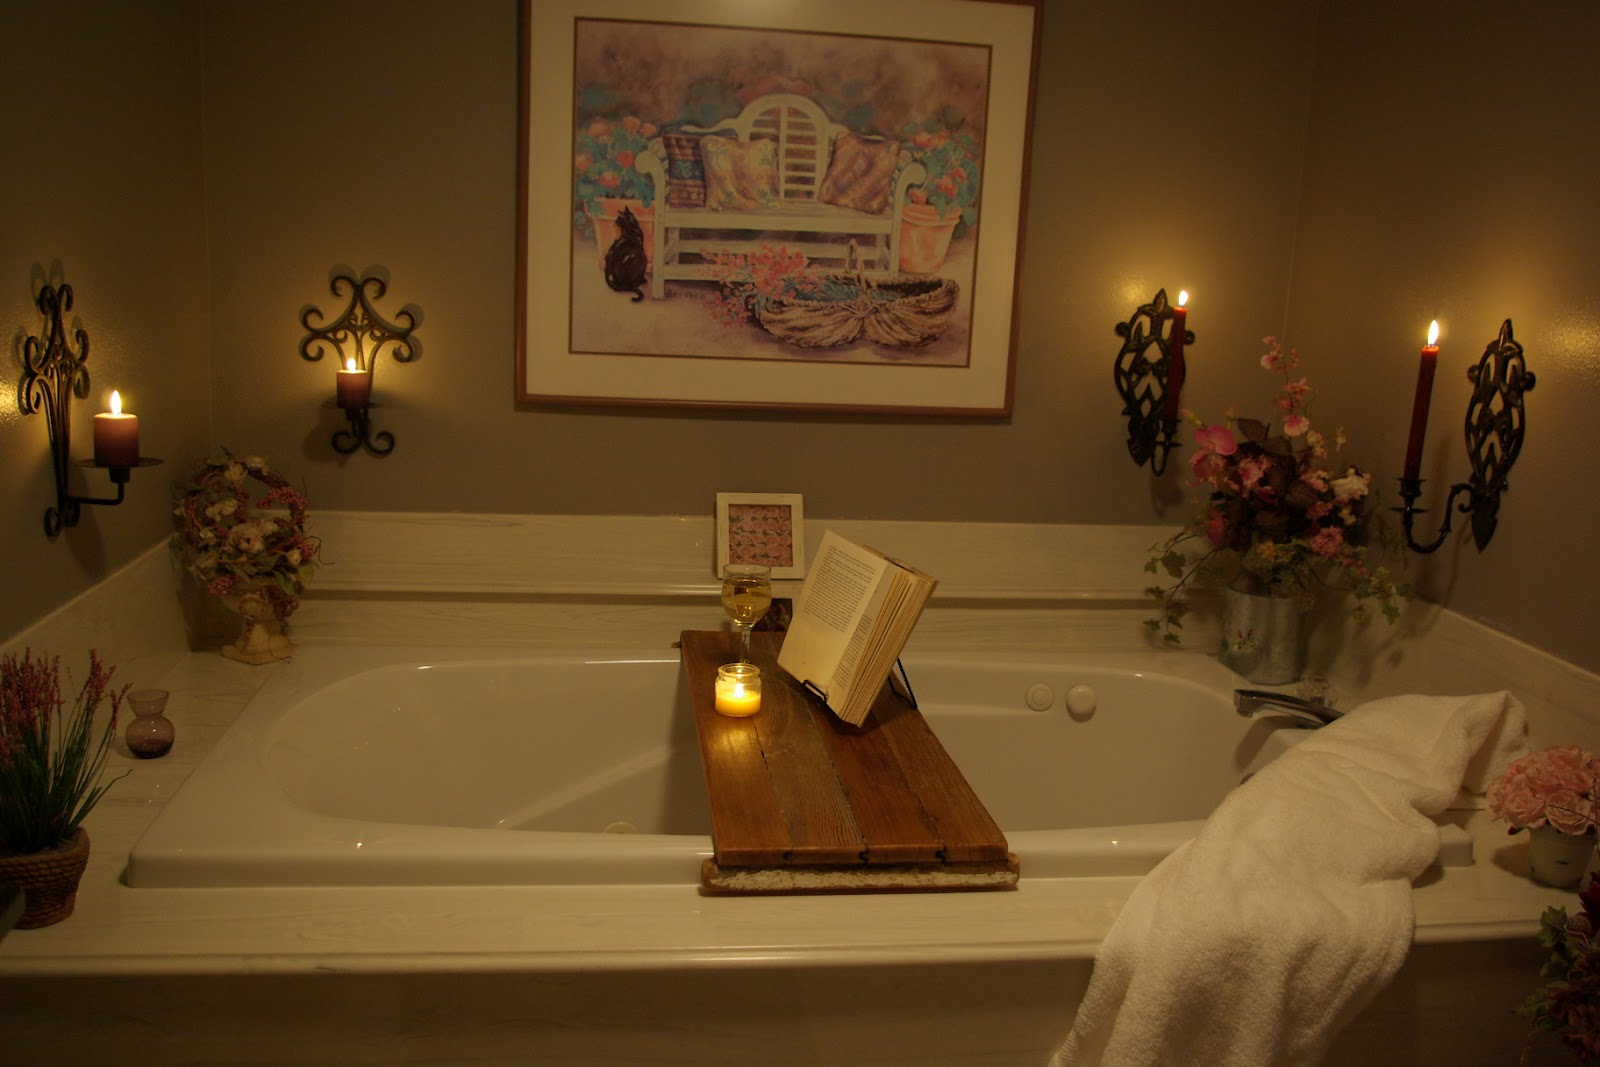 Simple Diy Bathtub Reading Tray Made From Teak Wood With Book